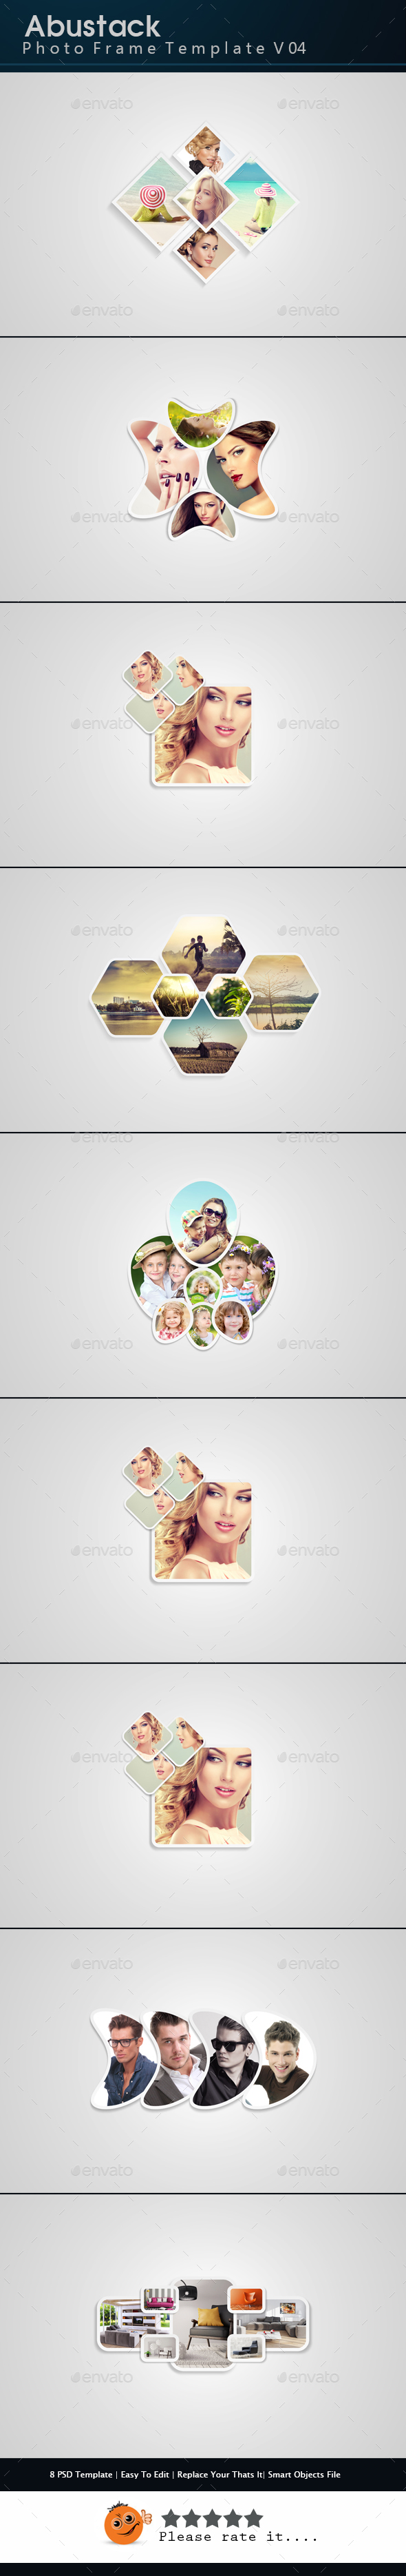 Abustack Photo Frame Template V04 - Photo Templates Graphics